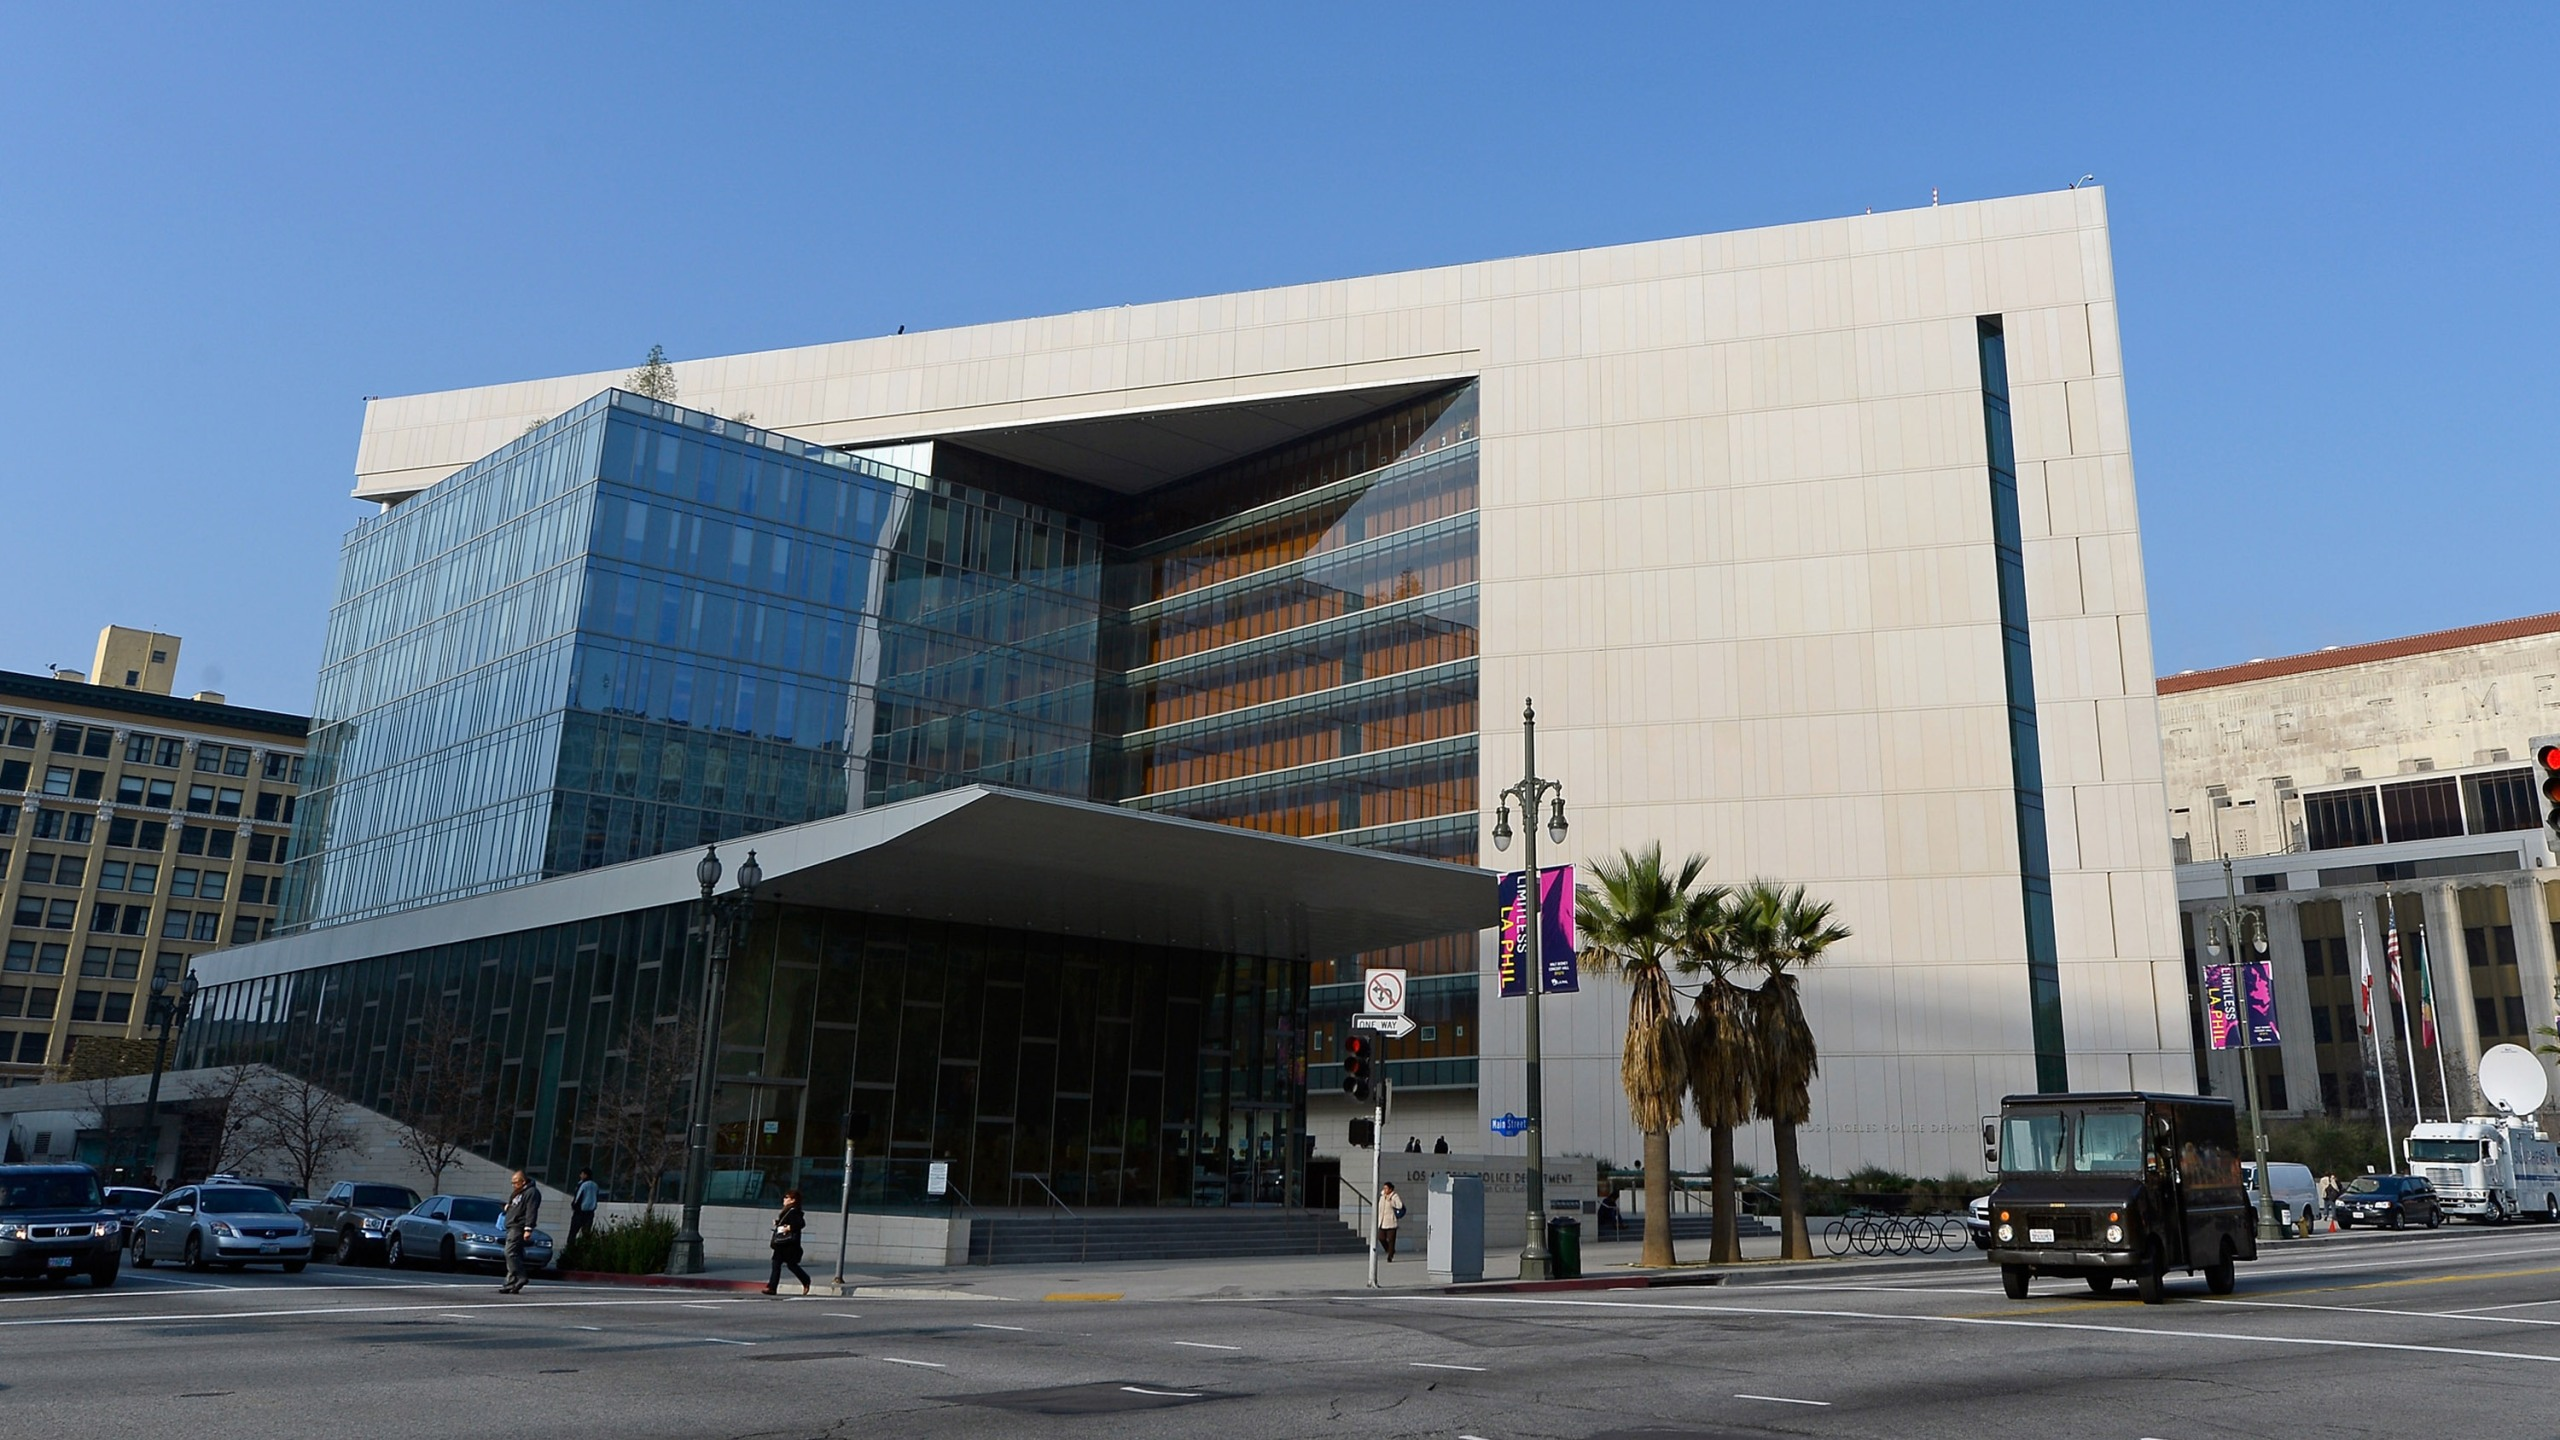 Los Angeles Police Department headquarters is seen in a photo from Feb. 7, 2013. (Credit: Kevork Djansezian/Getty Images)